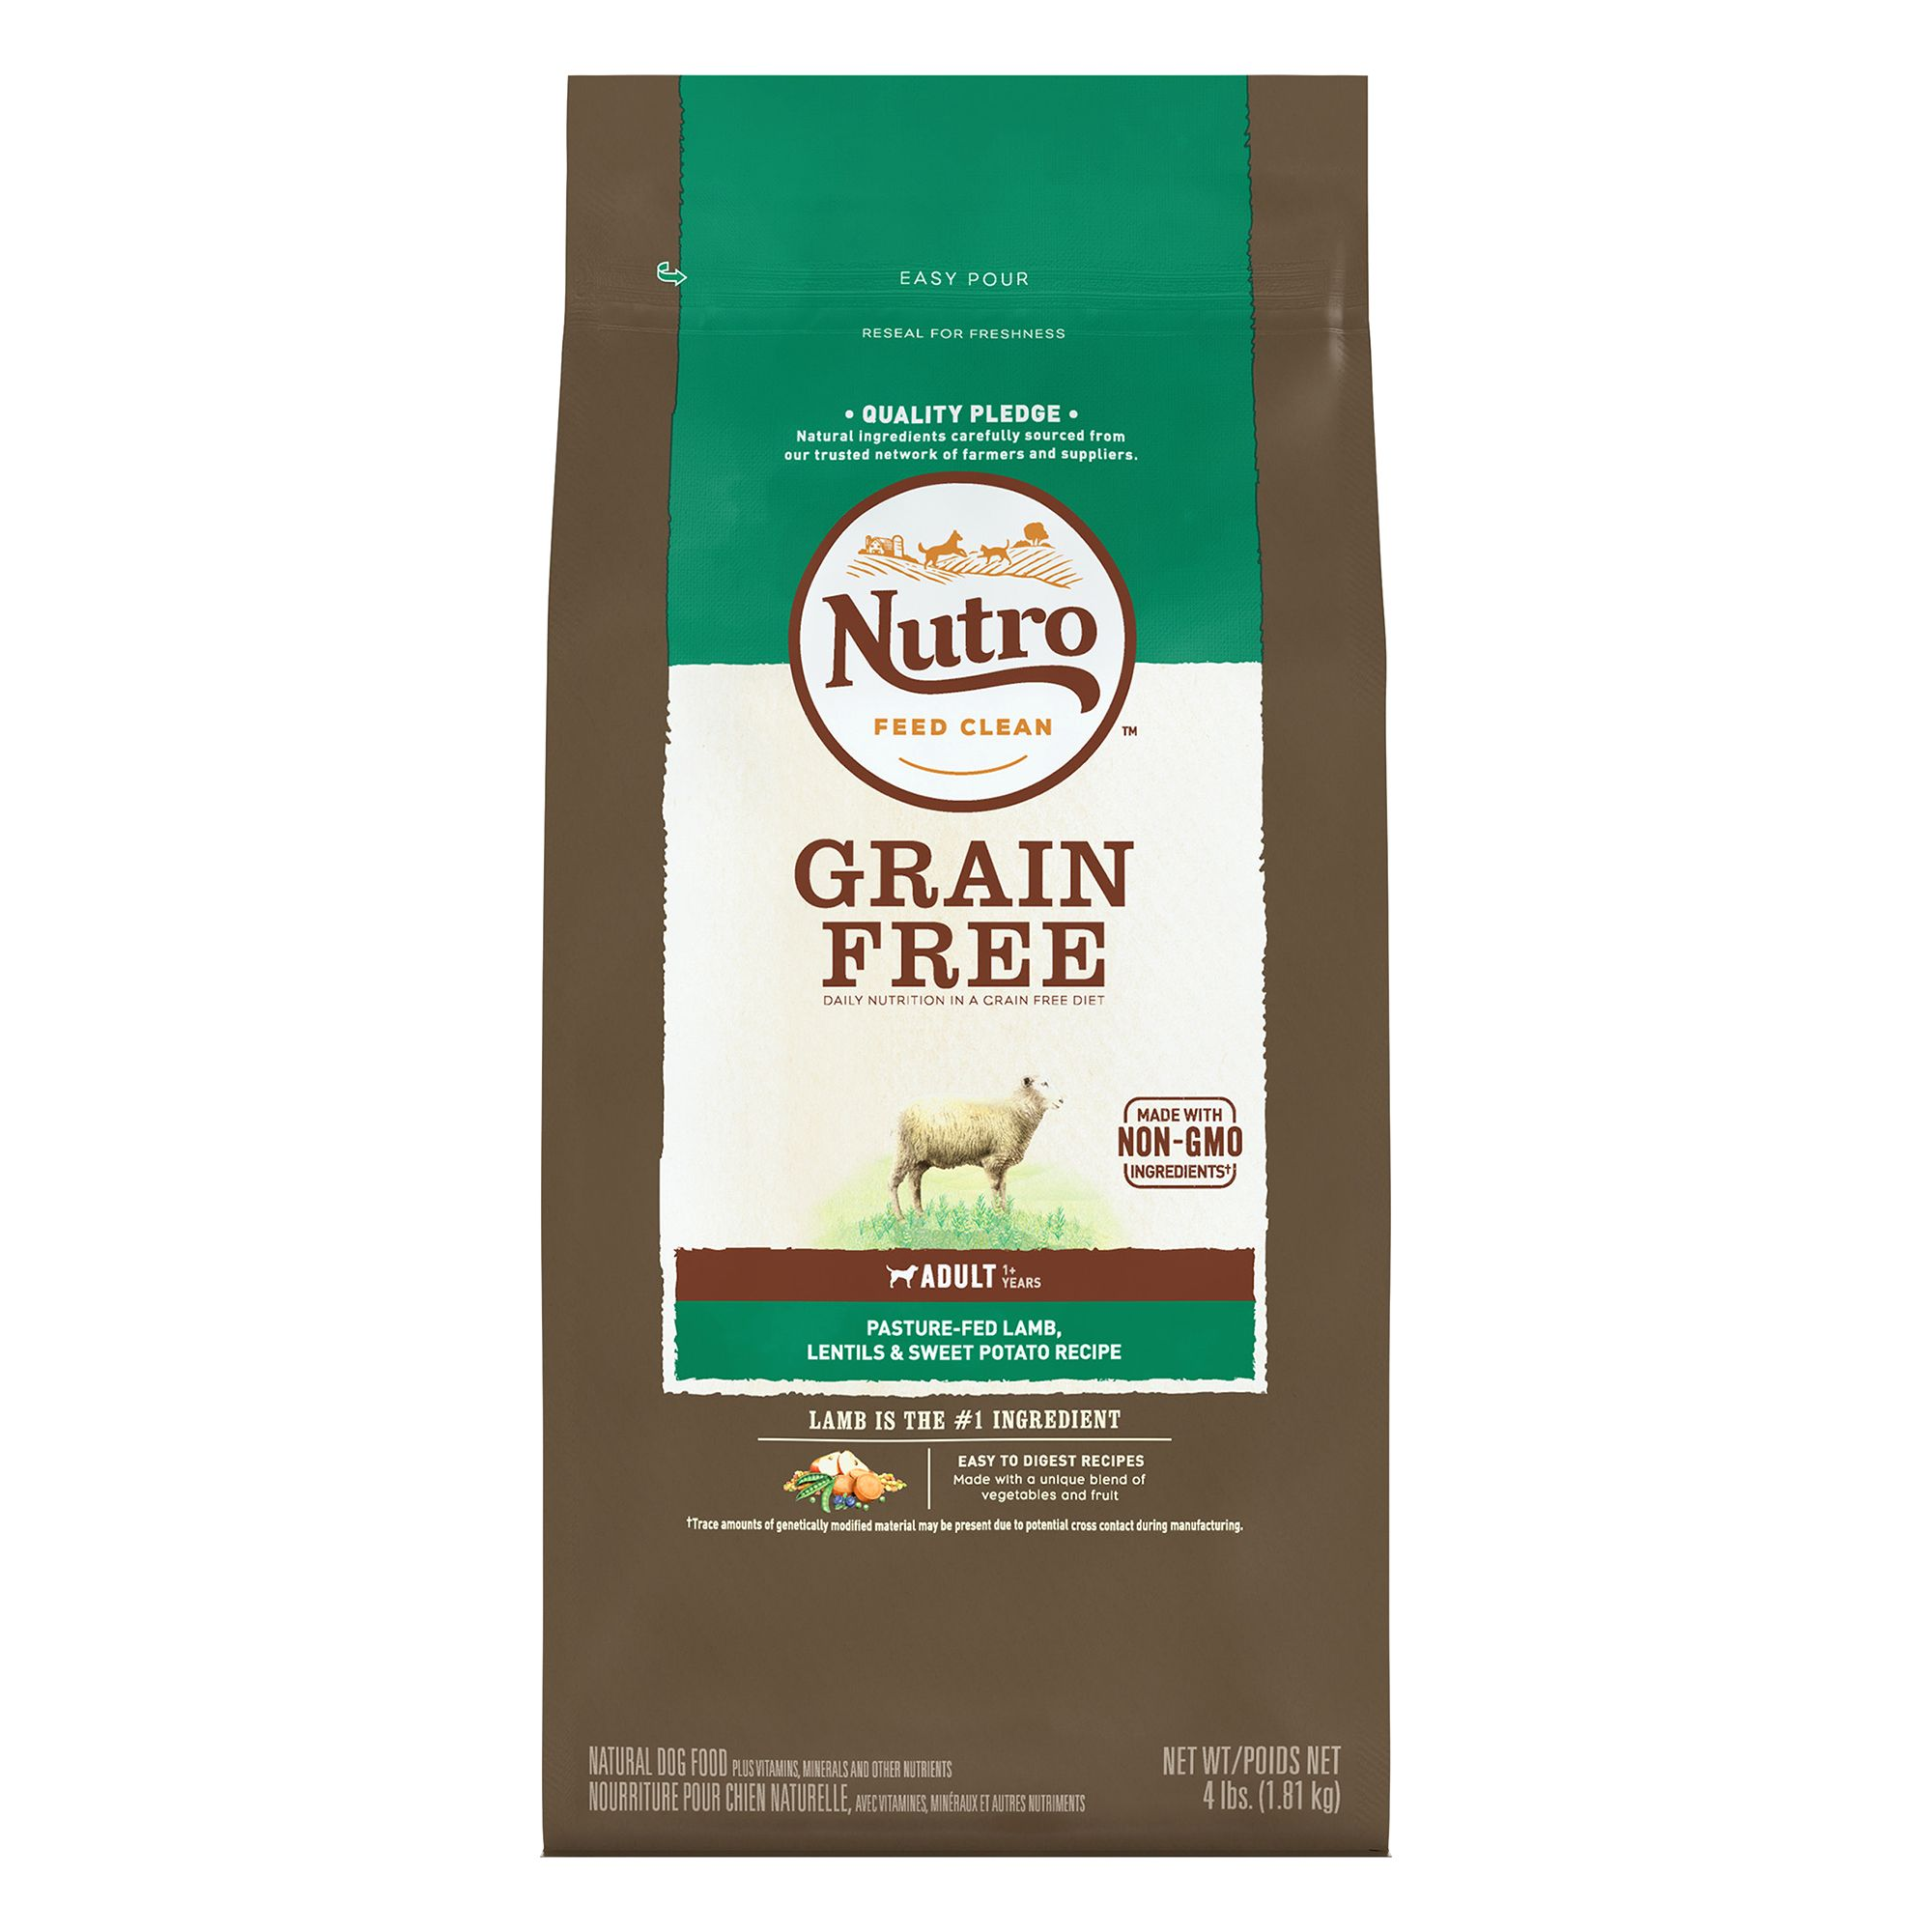 Nutro Grain Free Adult Dog Food - Natural, Non-GMO, Lamb, Lentils and Sweet Potato size: 4 Lb, Kibble, (1-7 years) 5246493